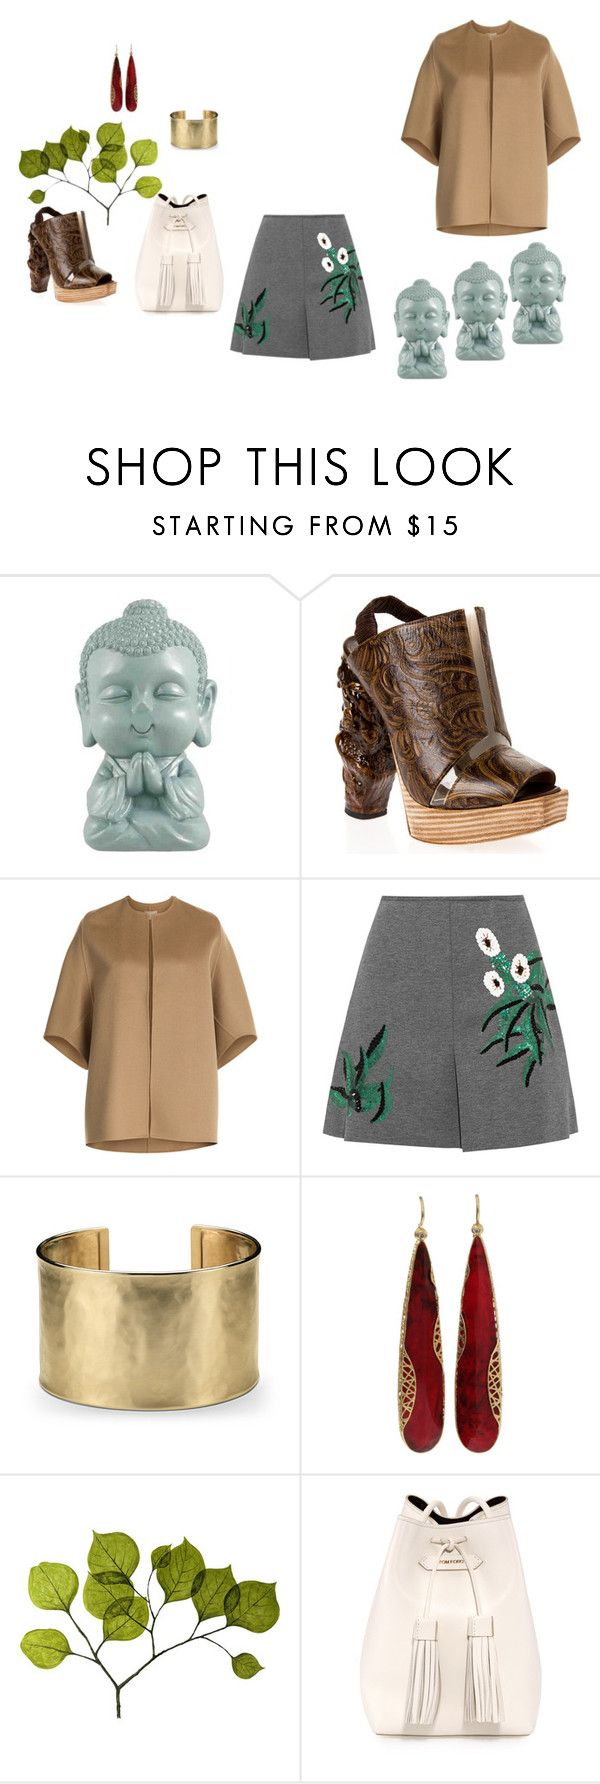 """""""2"""" by johnfontinelly on Polyvore featuring Nicholas Kirkwood, Michael Kors, Marni, Blue Nile, Yossi Harari, Dot & Bo, Tom Ford, women's clothing, women and female"""